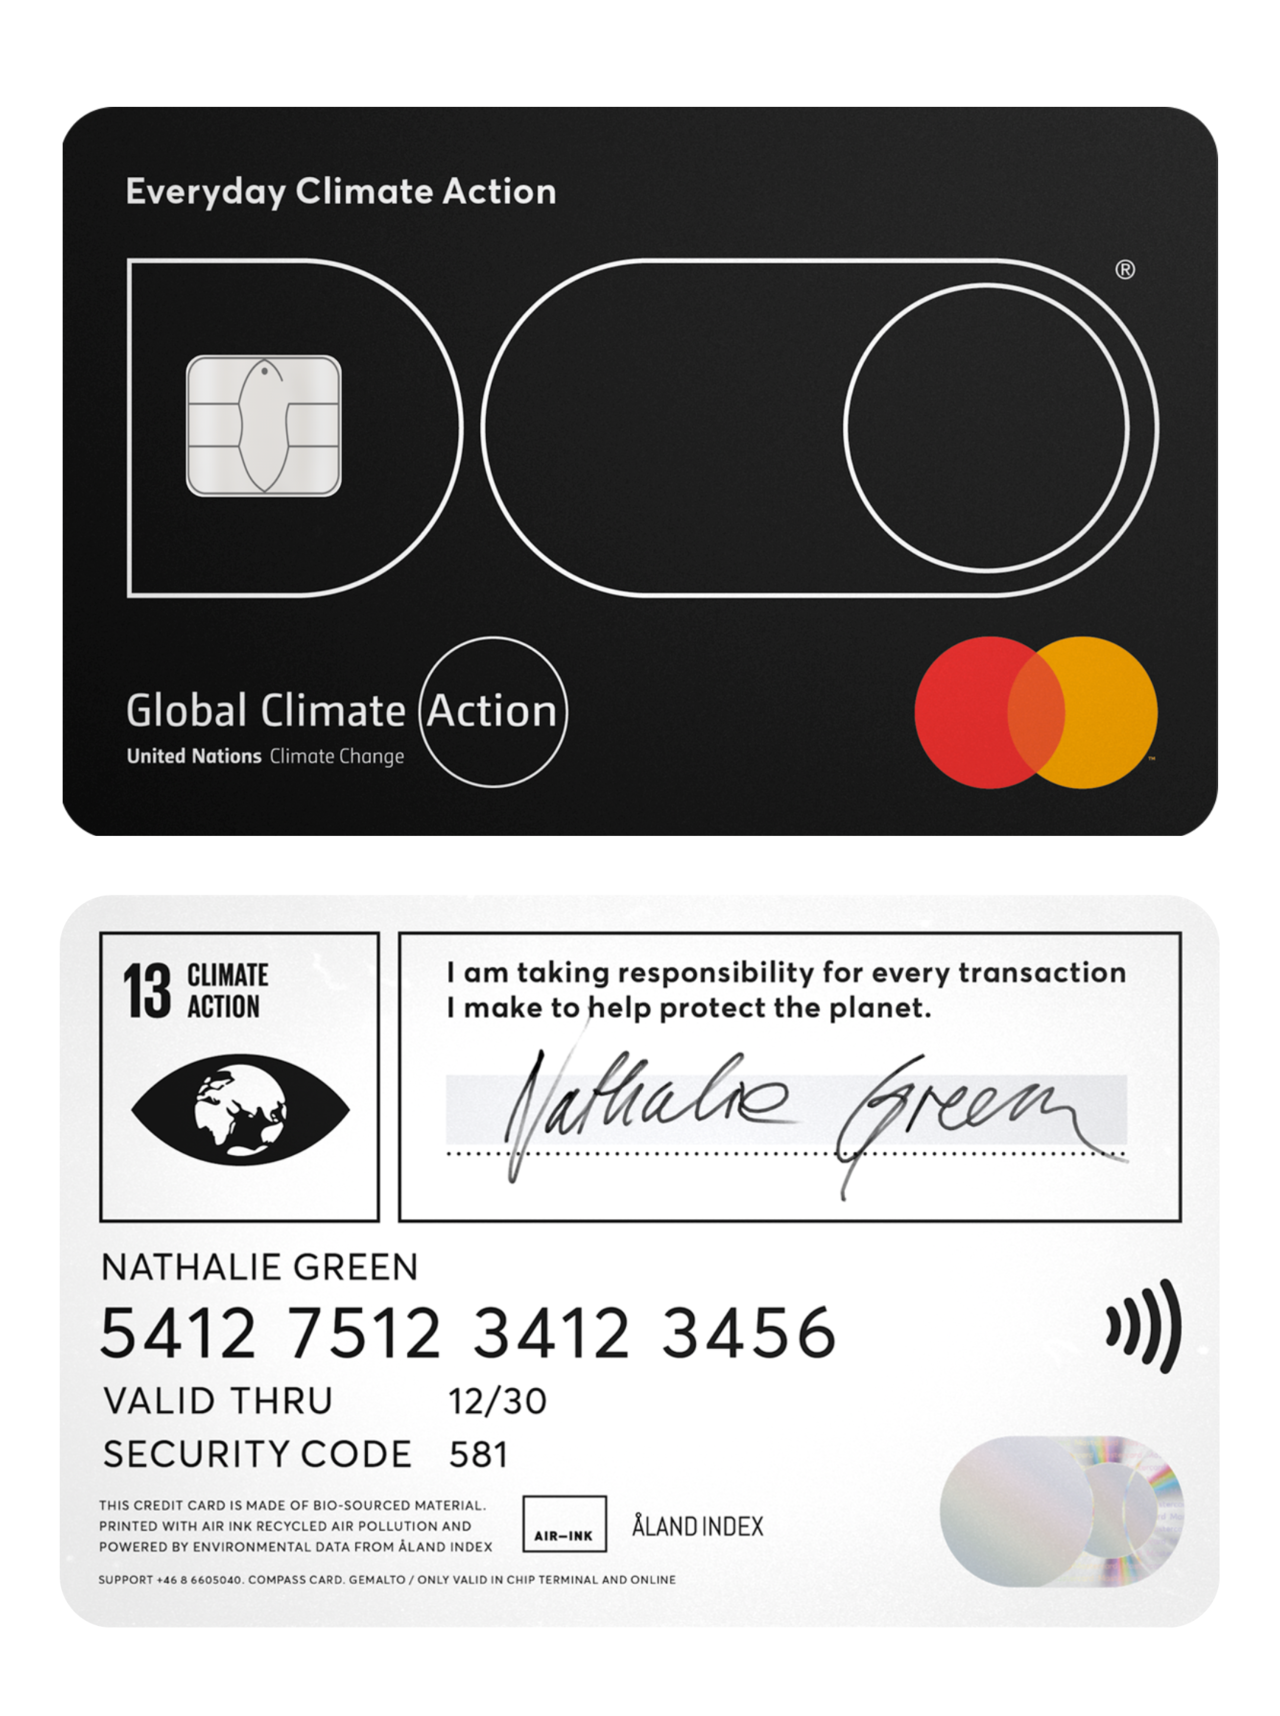 Pin By Rin Kim On Lejba Poster Text Credit Card Design Graphic Design